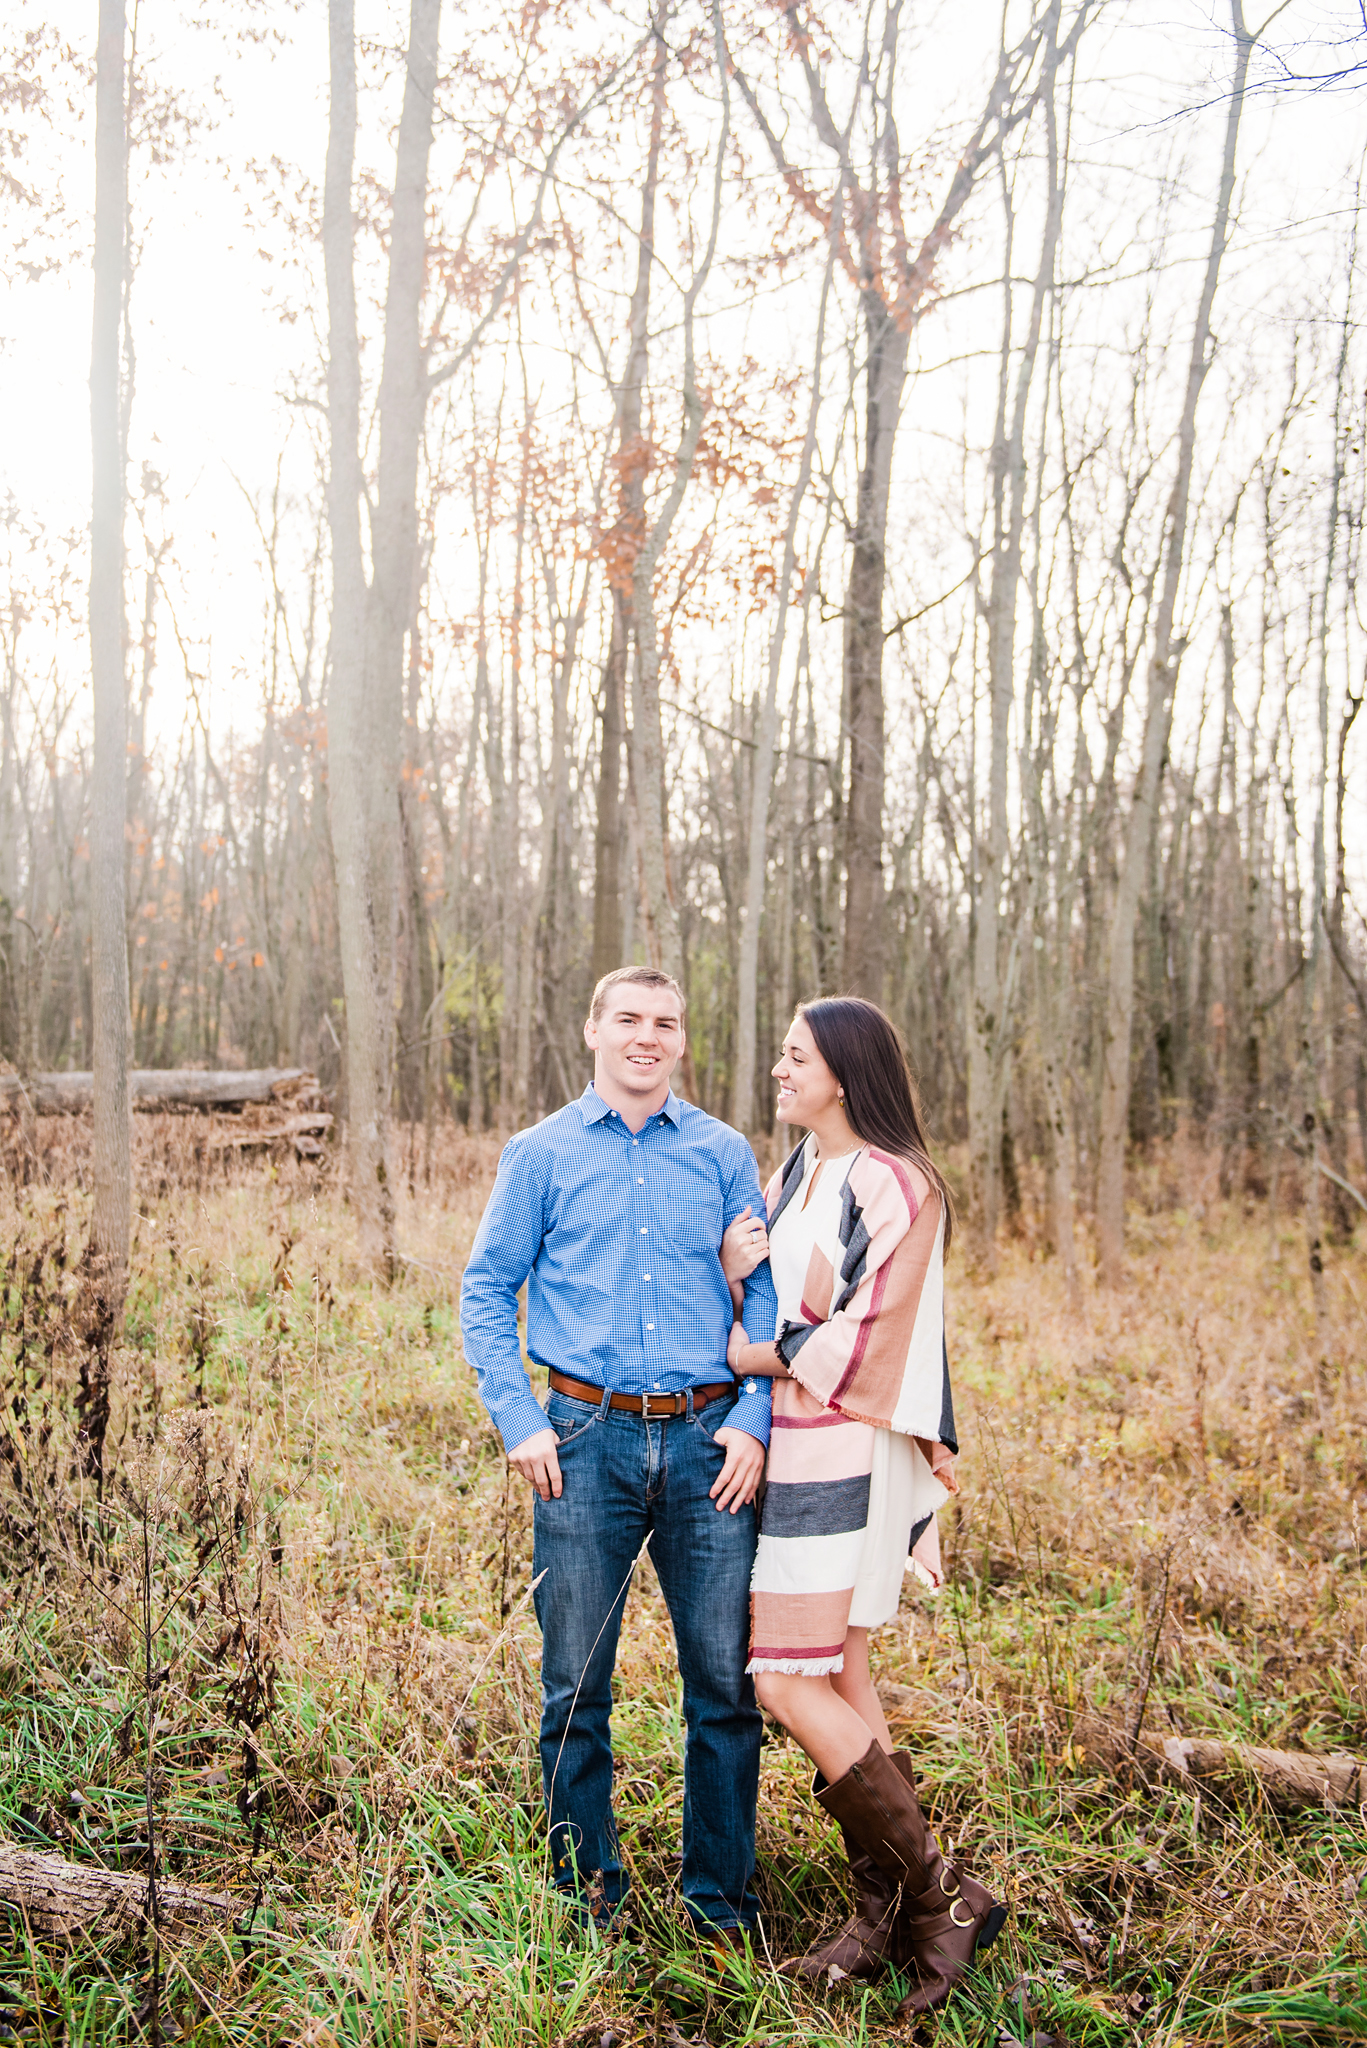 Mendon_Ponds_Park_Rochester_Engagement_Session_JILL_STUDIO_Rochester_NY_Photographer_DSC_0143.jpg